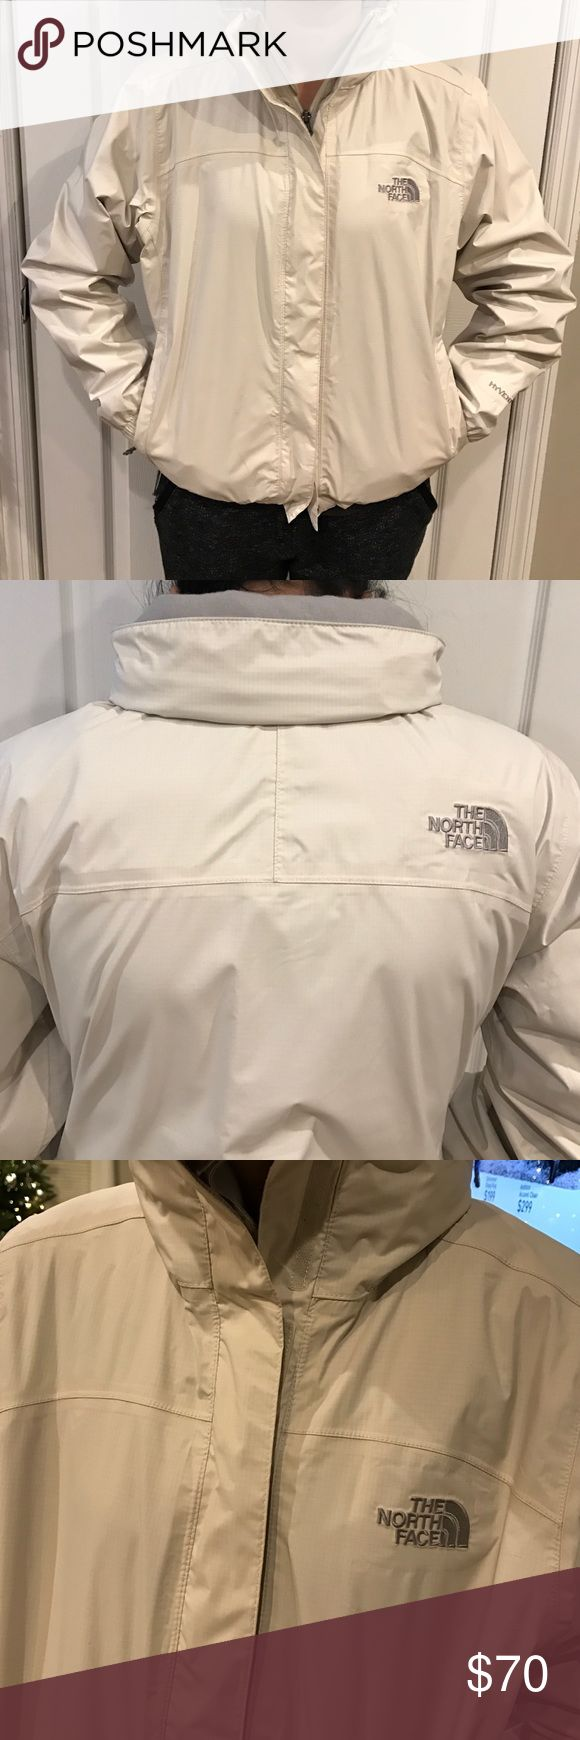 The North Face women's windbreaker XS White windbreaker with fold in hood. Bottom has elastic string tie and stretch cuffs. Inside lining grey netted. Zip up front with Velcro overlap closure. The North Face Jackets & Coats